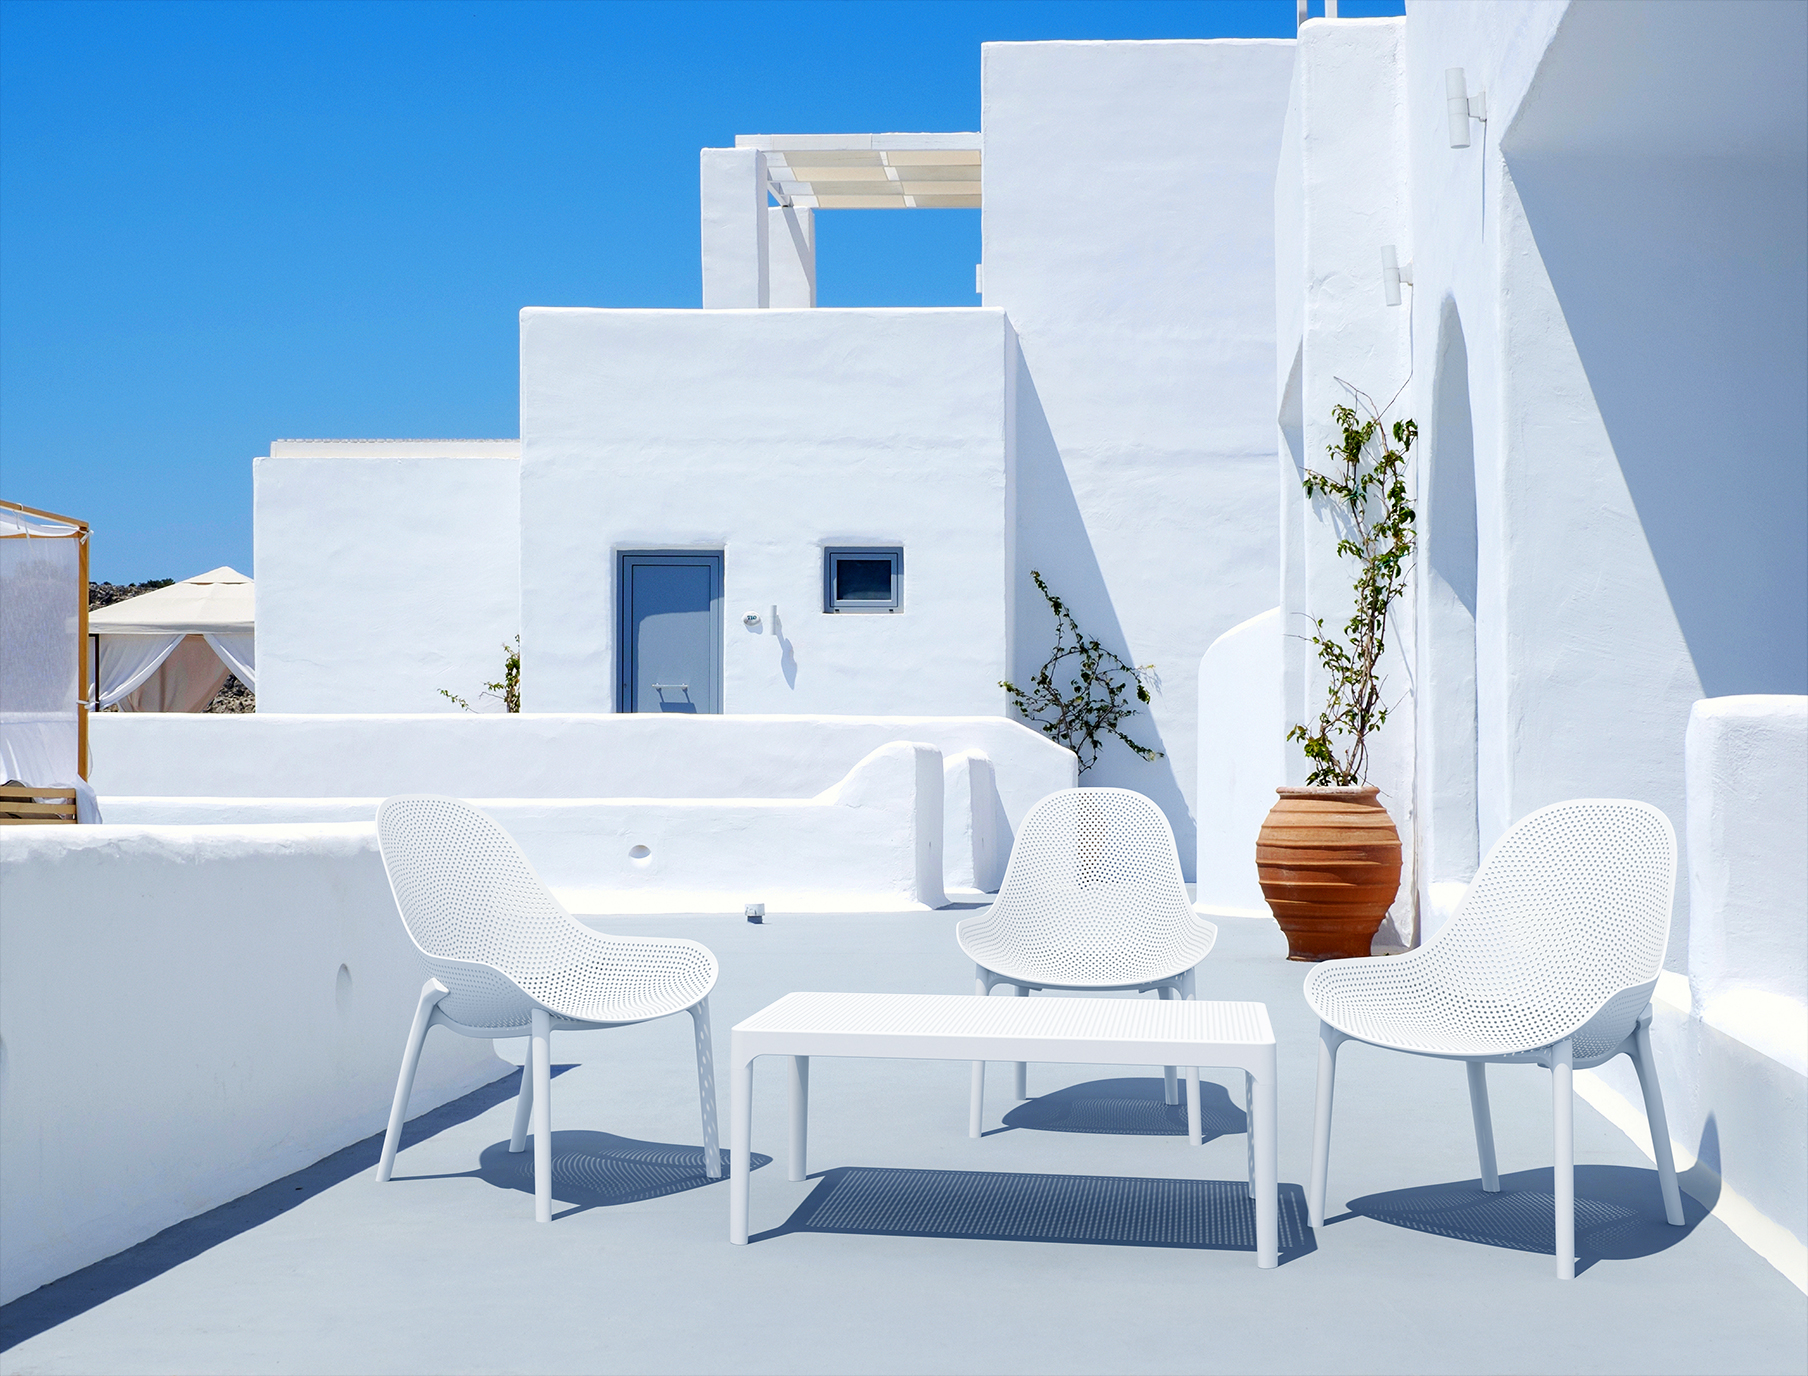 Sky Lounge Chairs and Lounge Table Setting